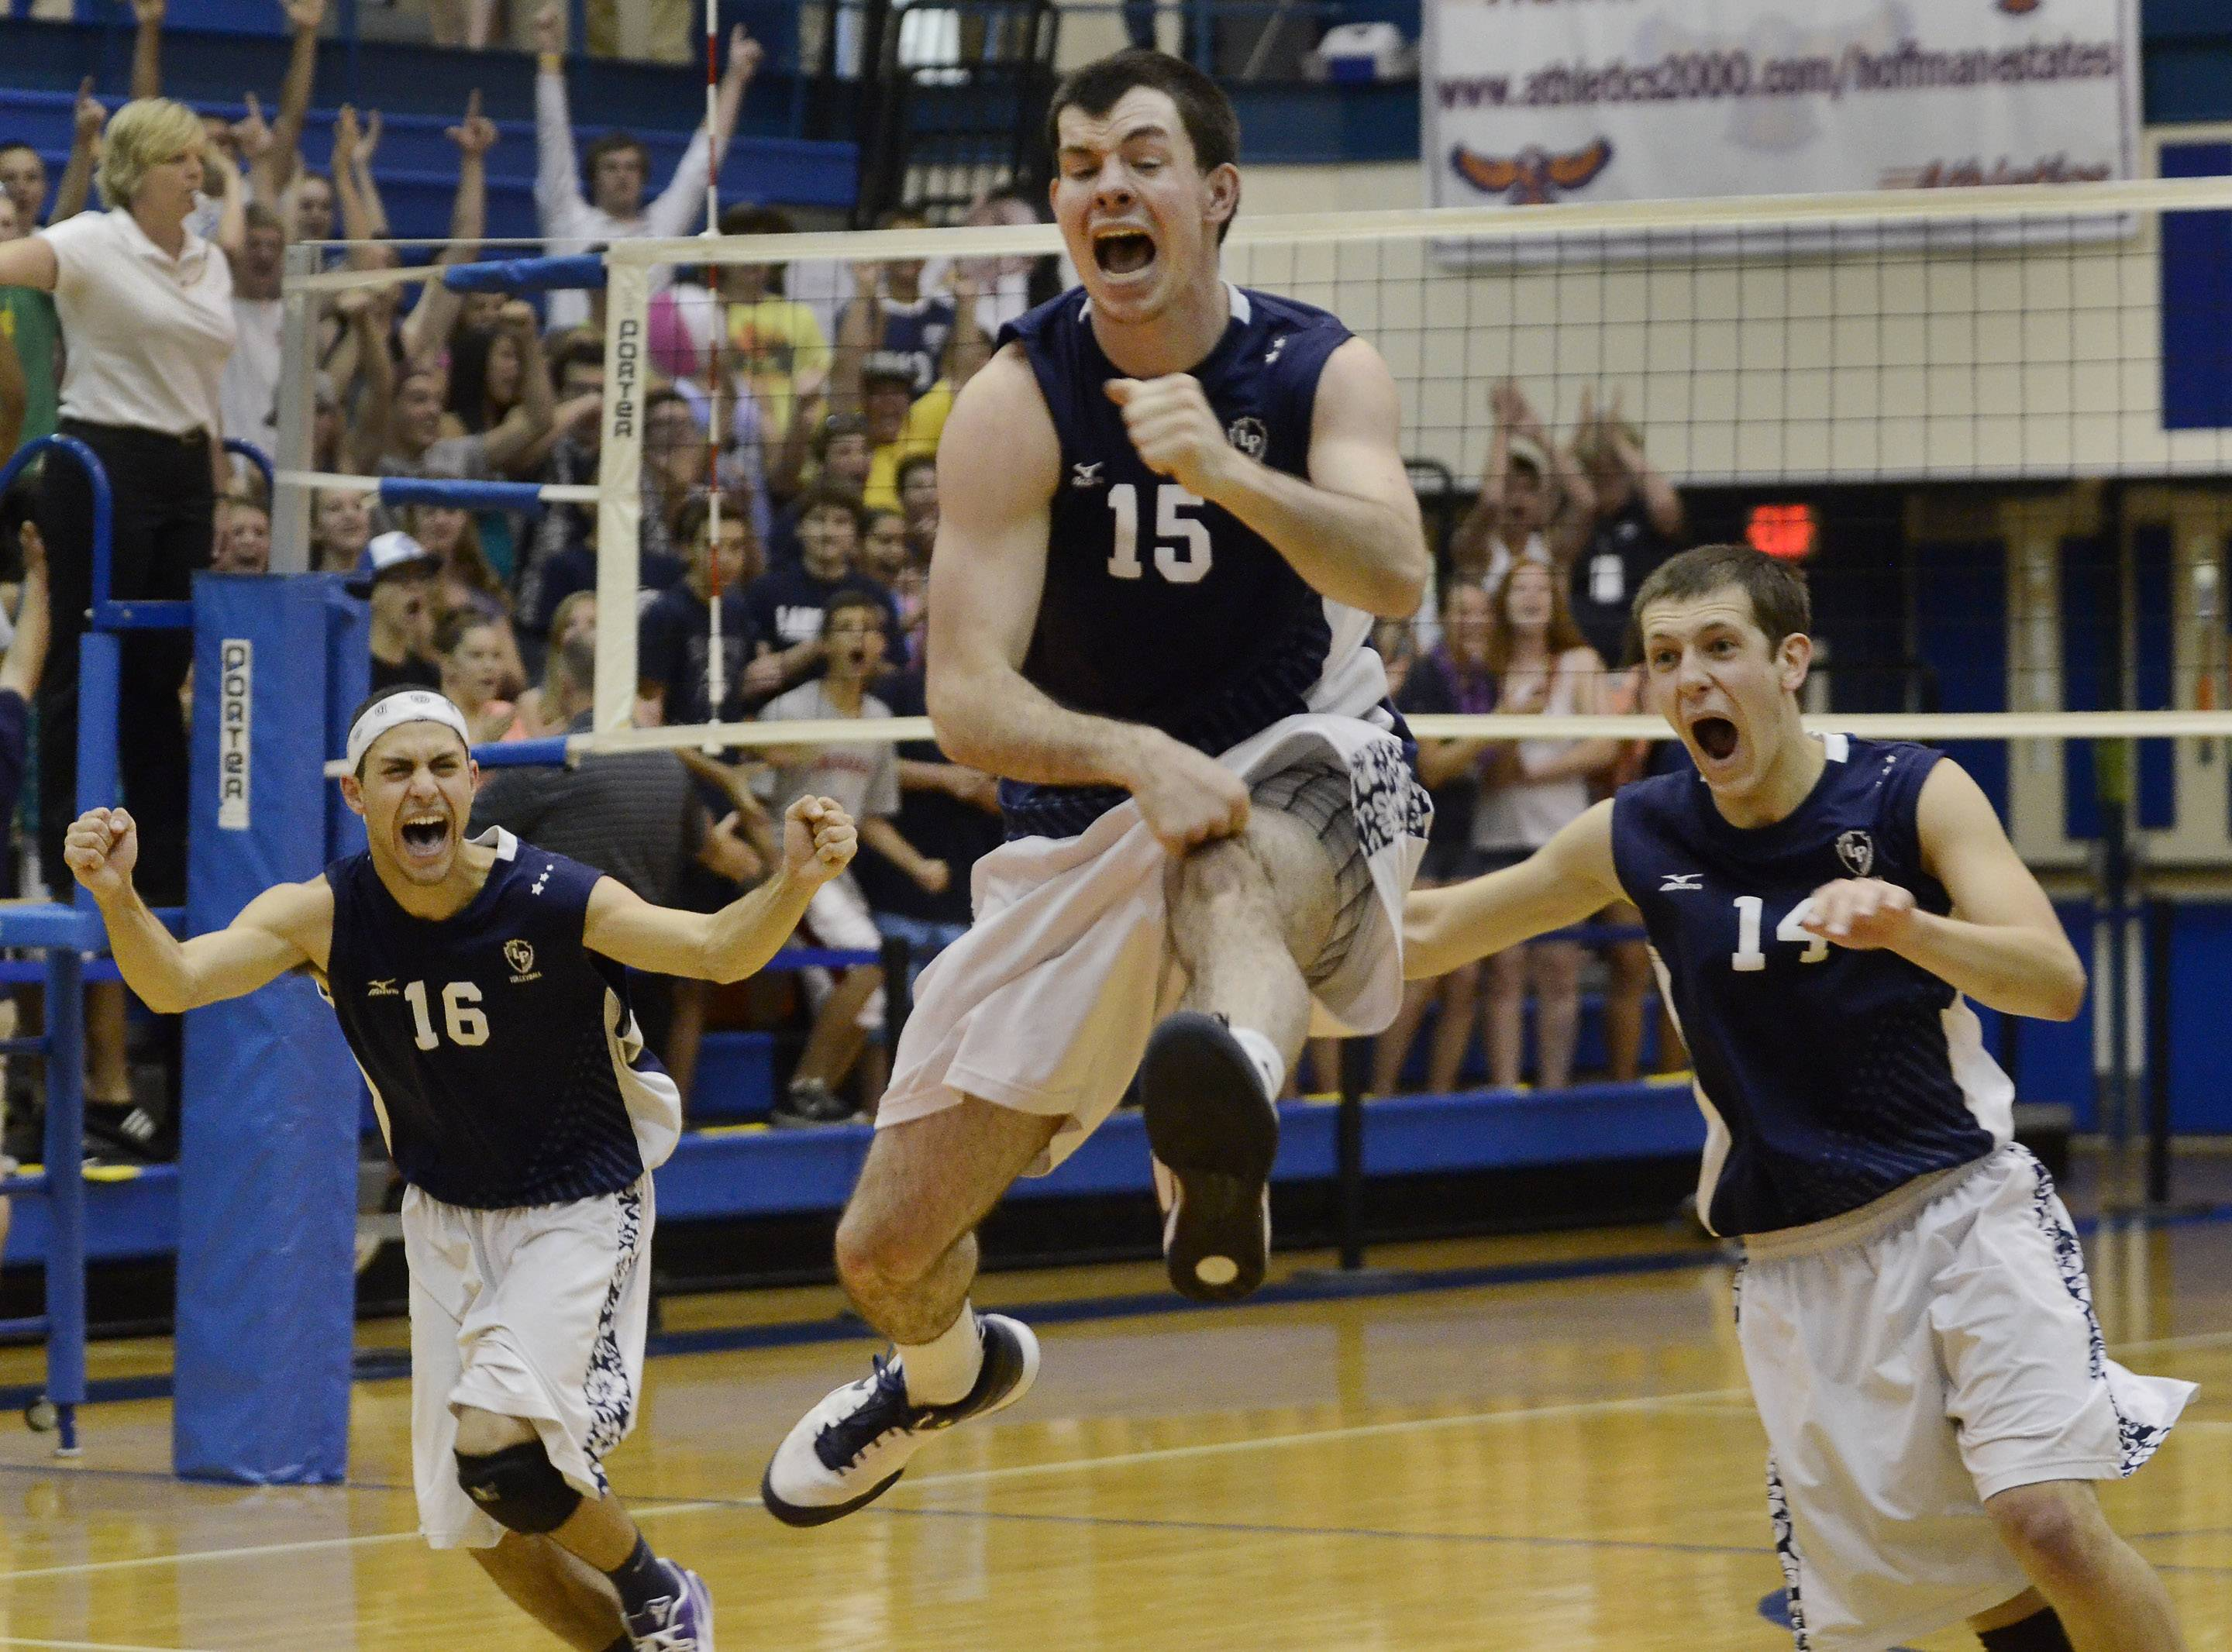 Lake Park's Sean Moore (15) celebrates with teammates Dominick Terry (16) and Jeff Yost (14) after the Lancers defeated New Trier in the boys volleyball state tournament quarterfinals Friday at Hoffman Estates.